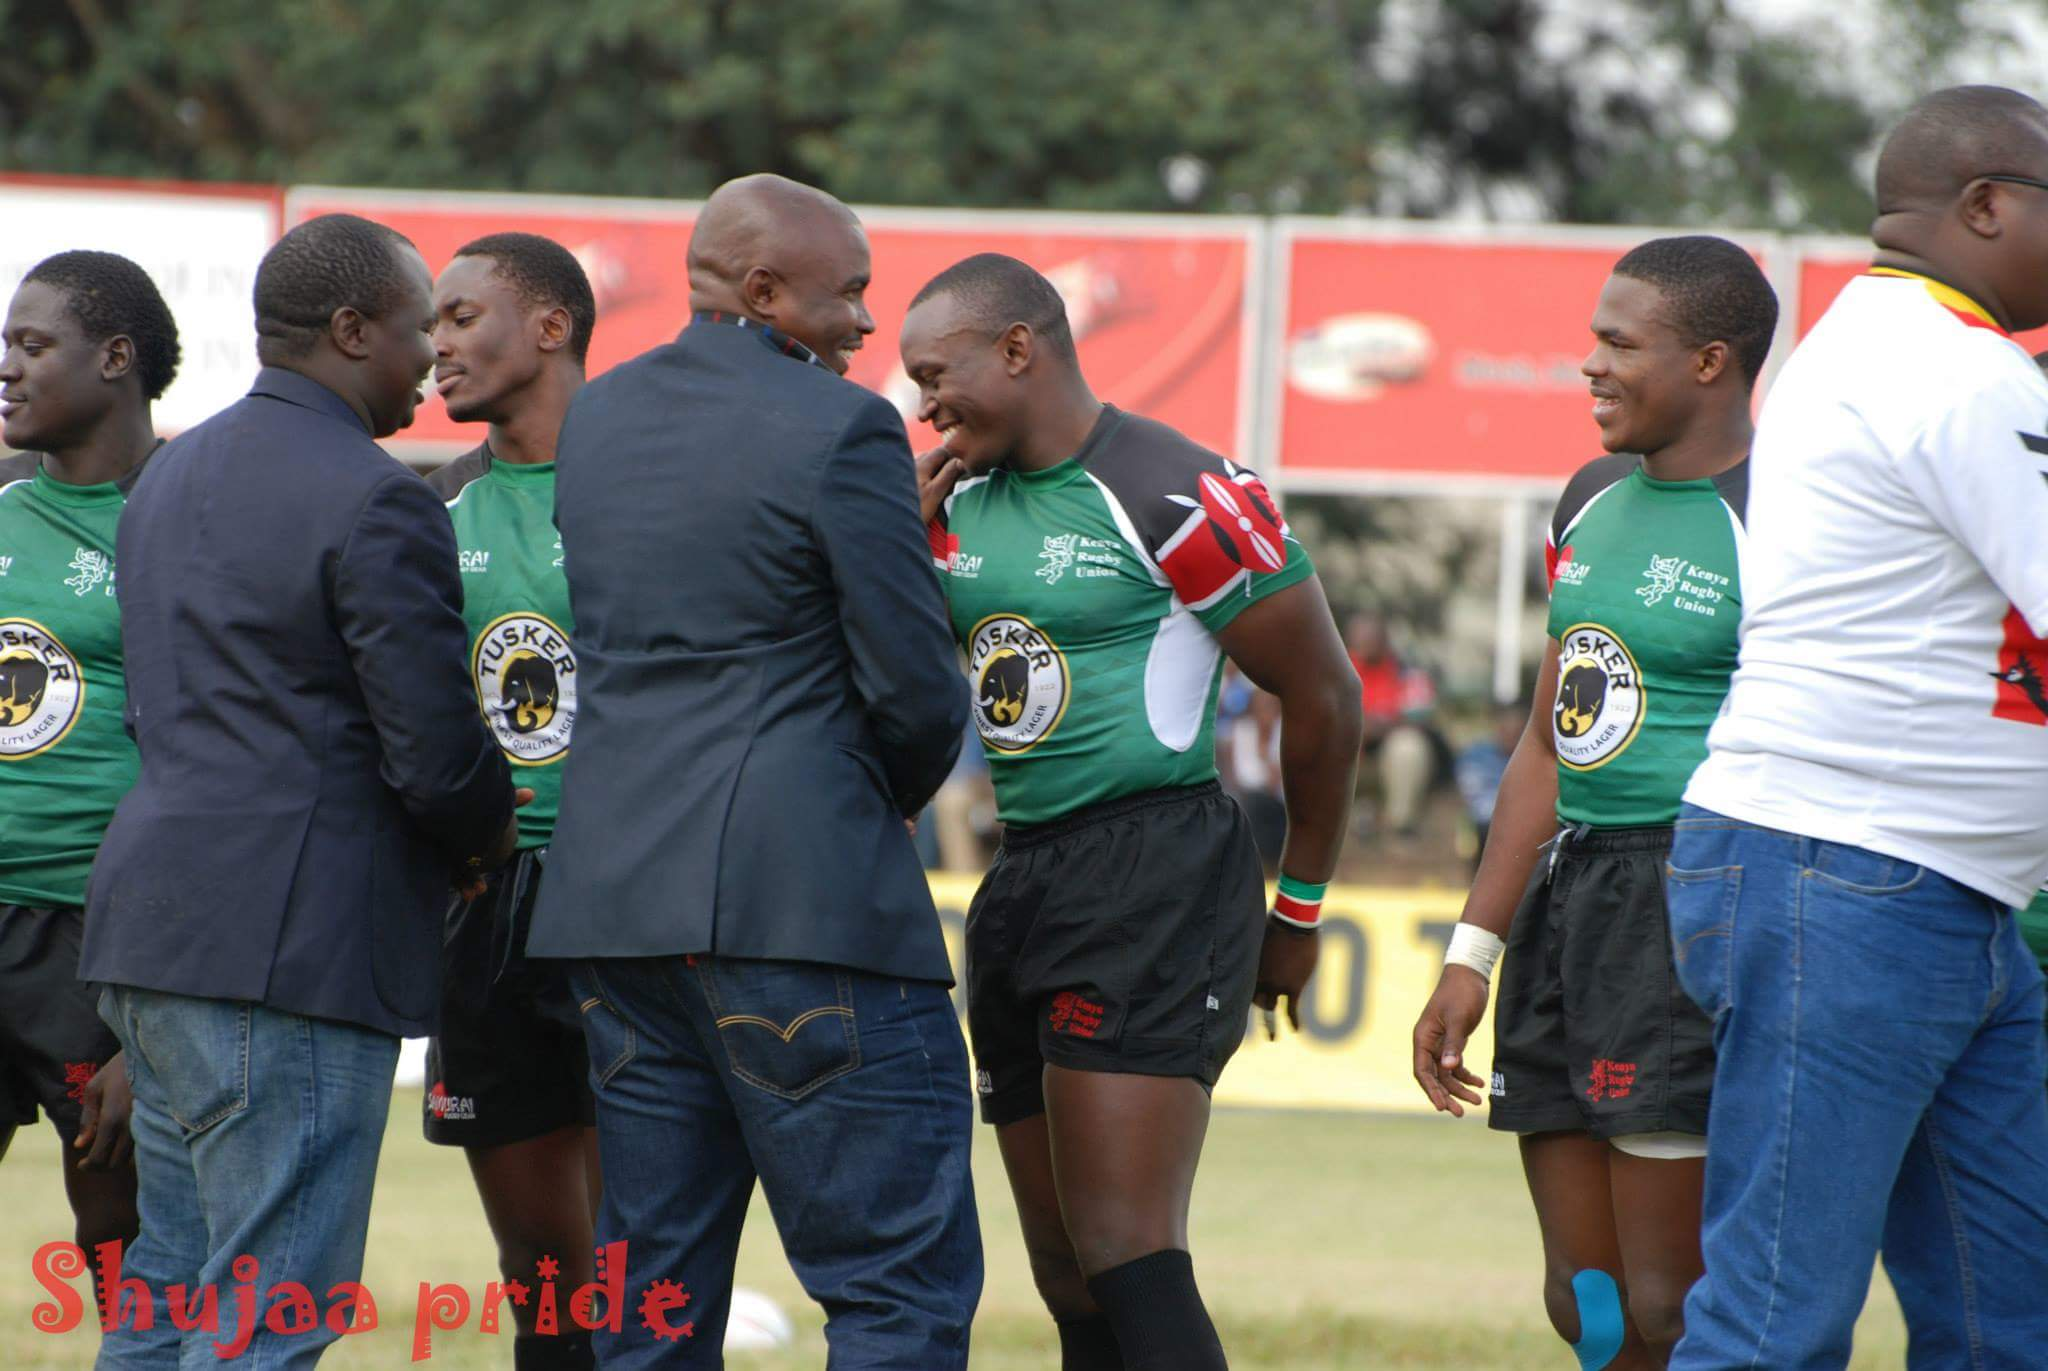 Wangila appeals to potential sponsors to come on board